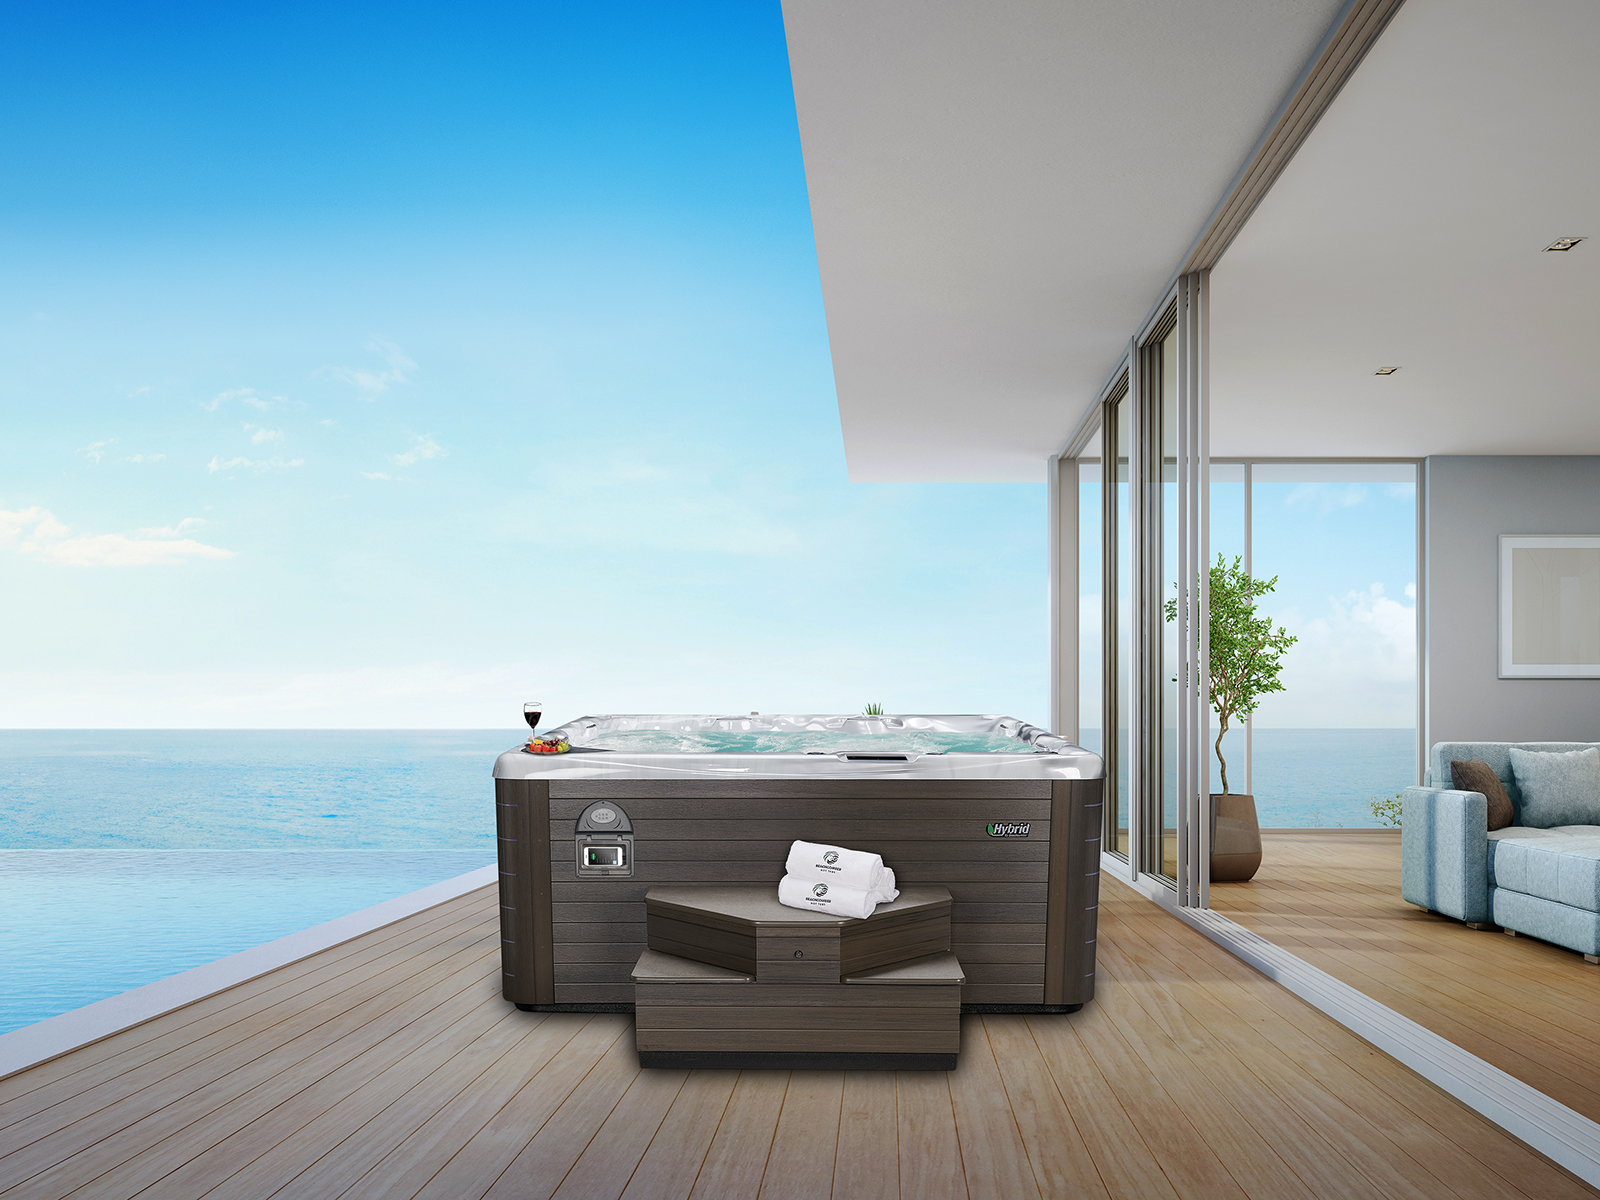 beachcomber hot tub with sea in background